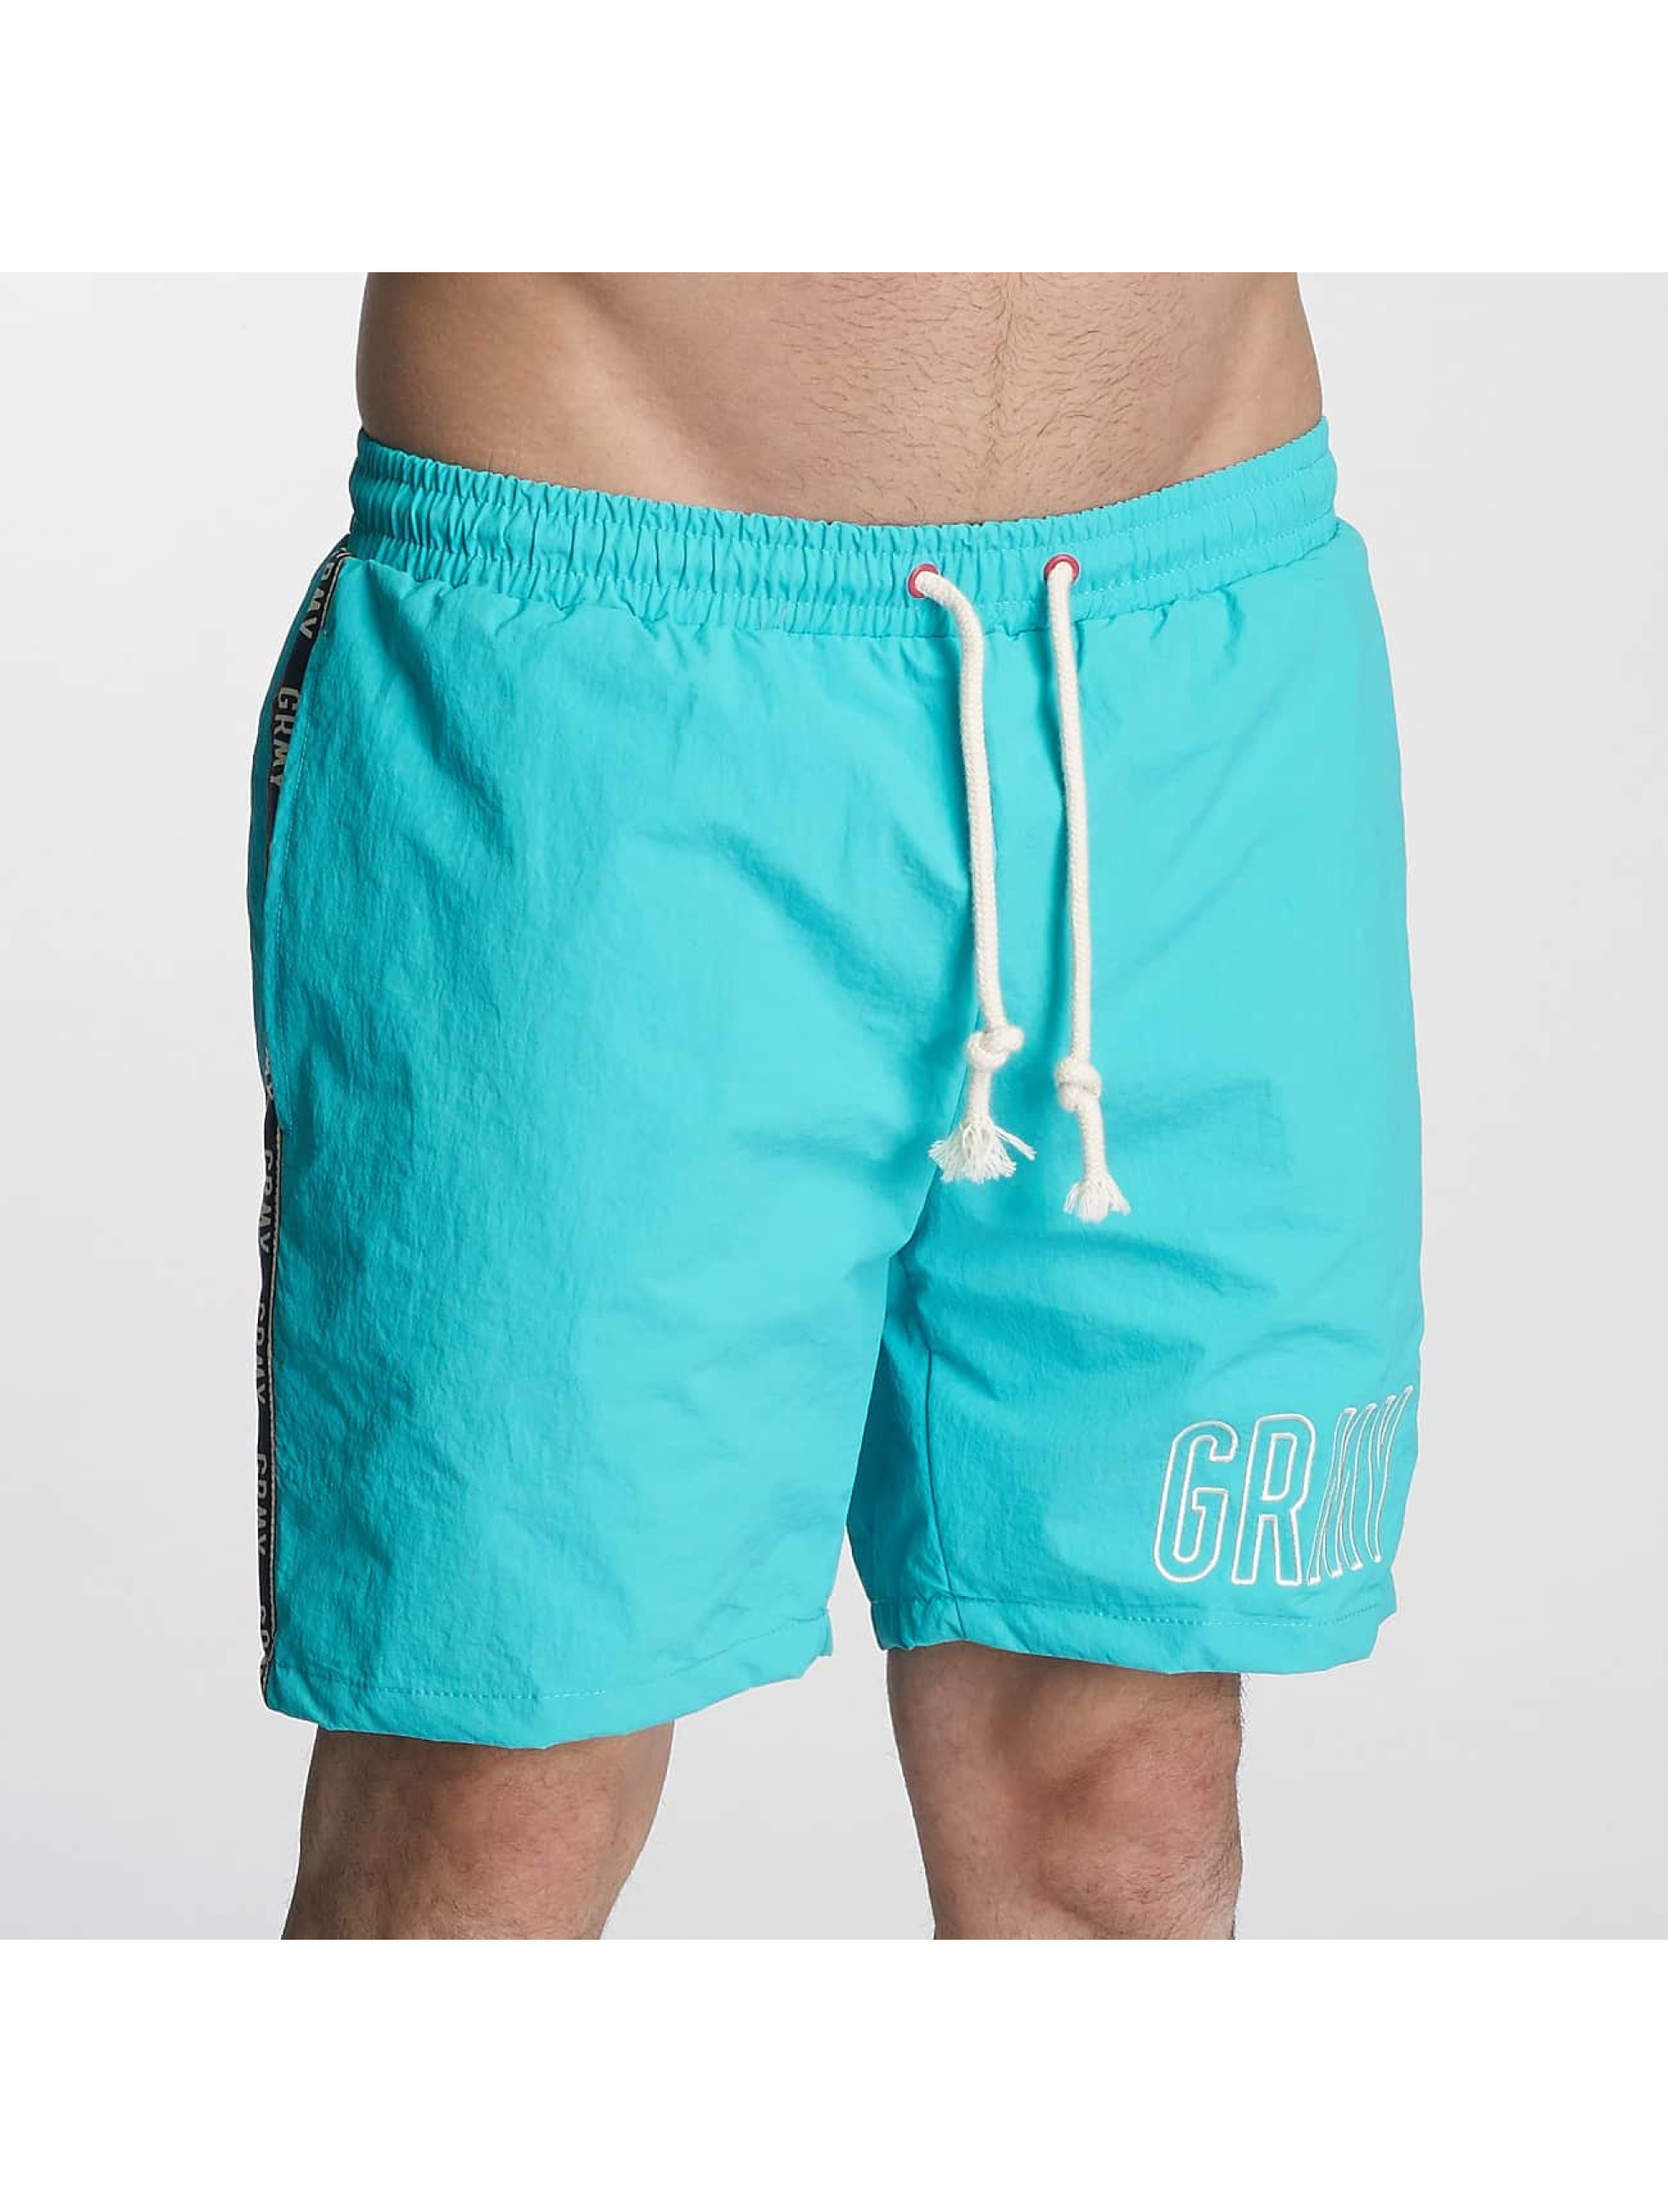 Grimey Wear Männer Badeshorts Rock Creek in blau